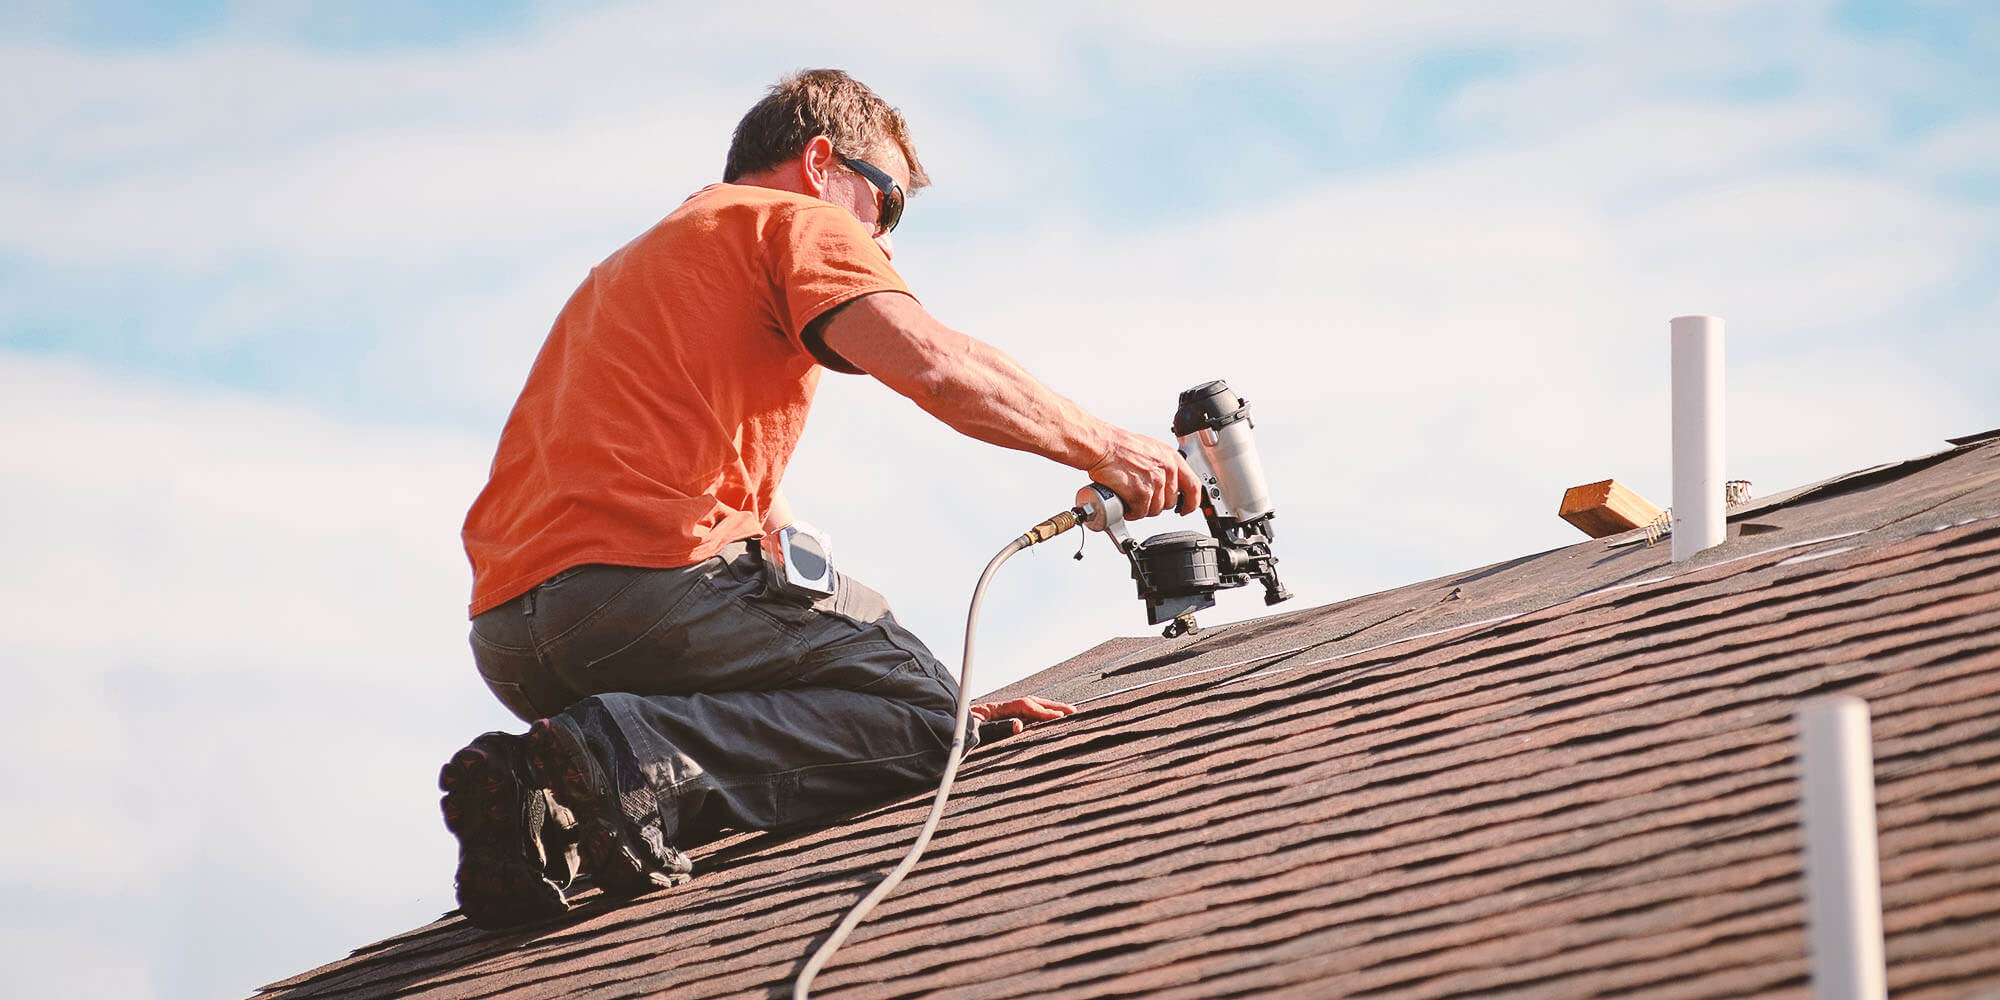 Quit Smoke Scotch Roofing Pictures